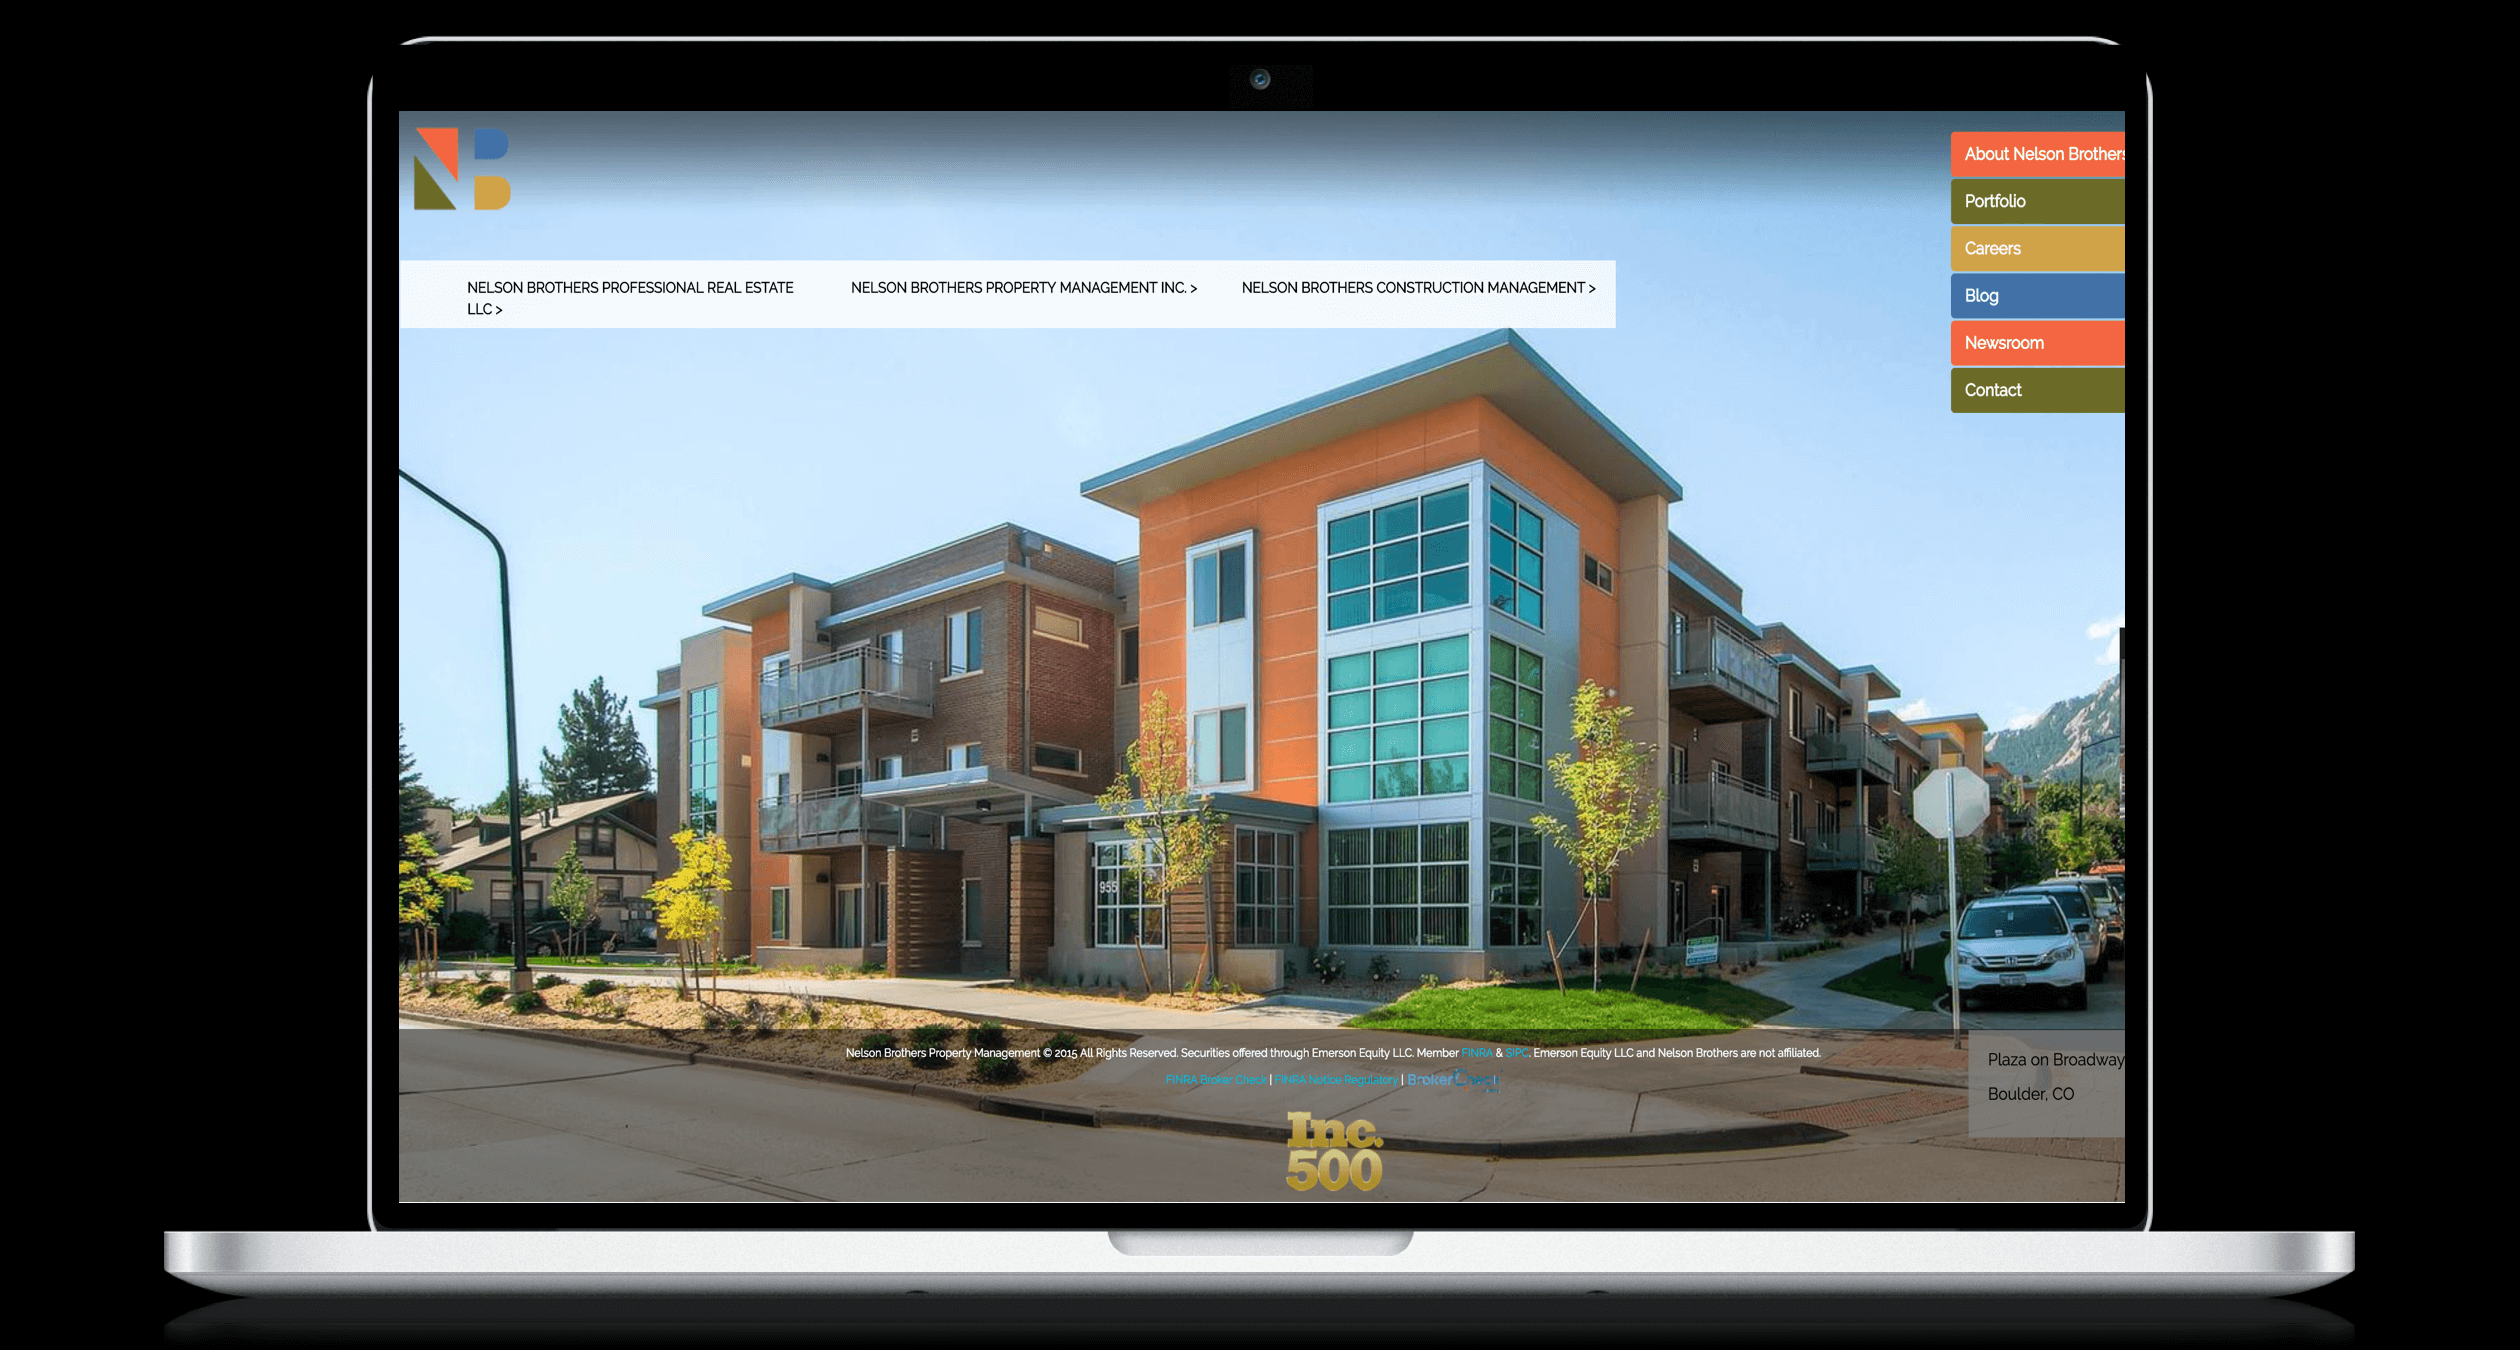 PHX-Web-Agency-Nelson-Partners-Student-Housing-Apartments-1031-Exchange-REIT-Website-Design-Before